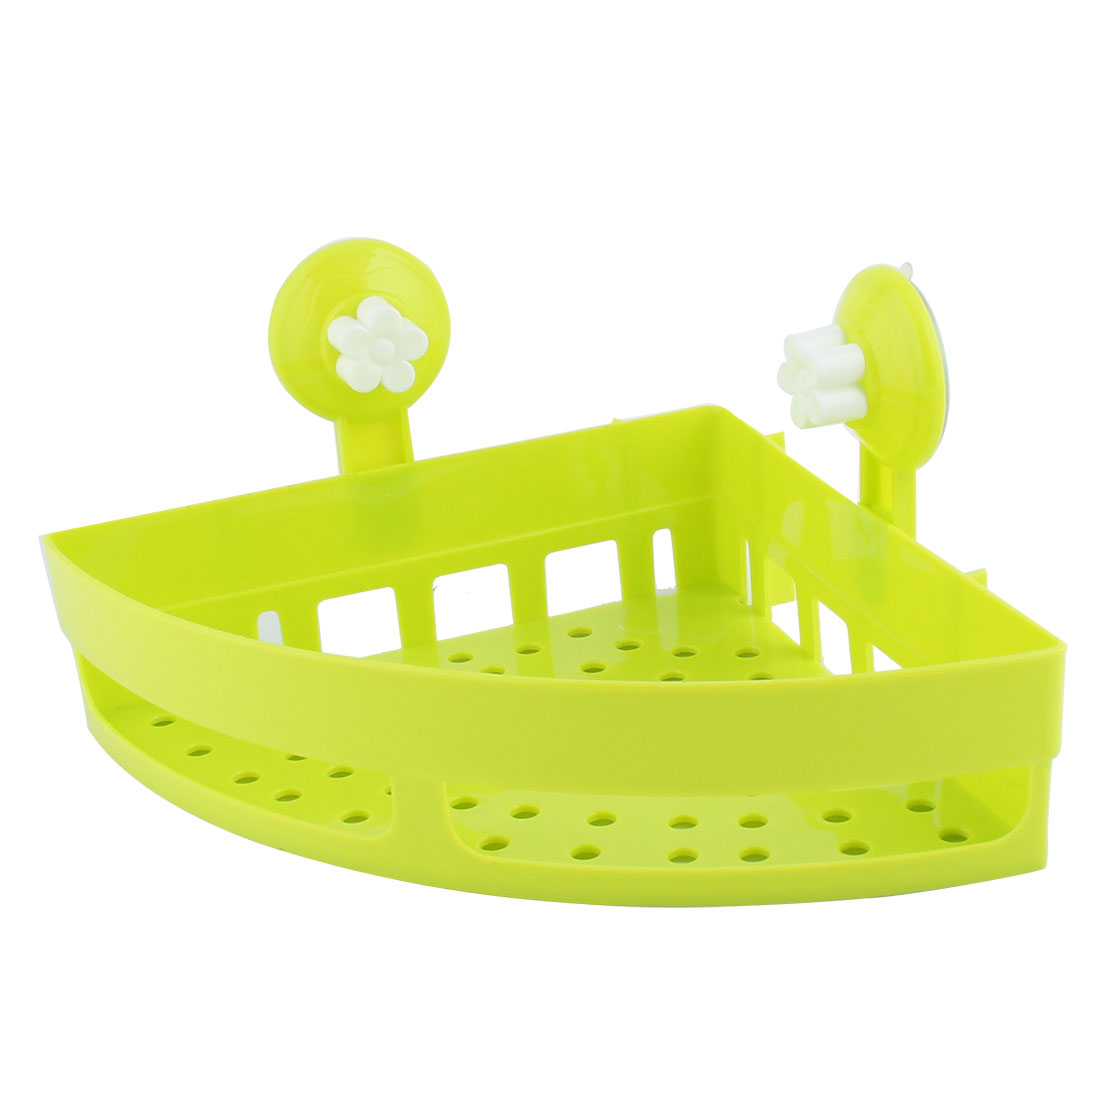 Bathroom Wall Triangle Plastic Commodity Organize Suction Cup Shelf Holder Green